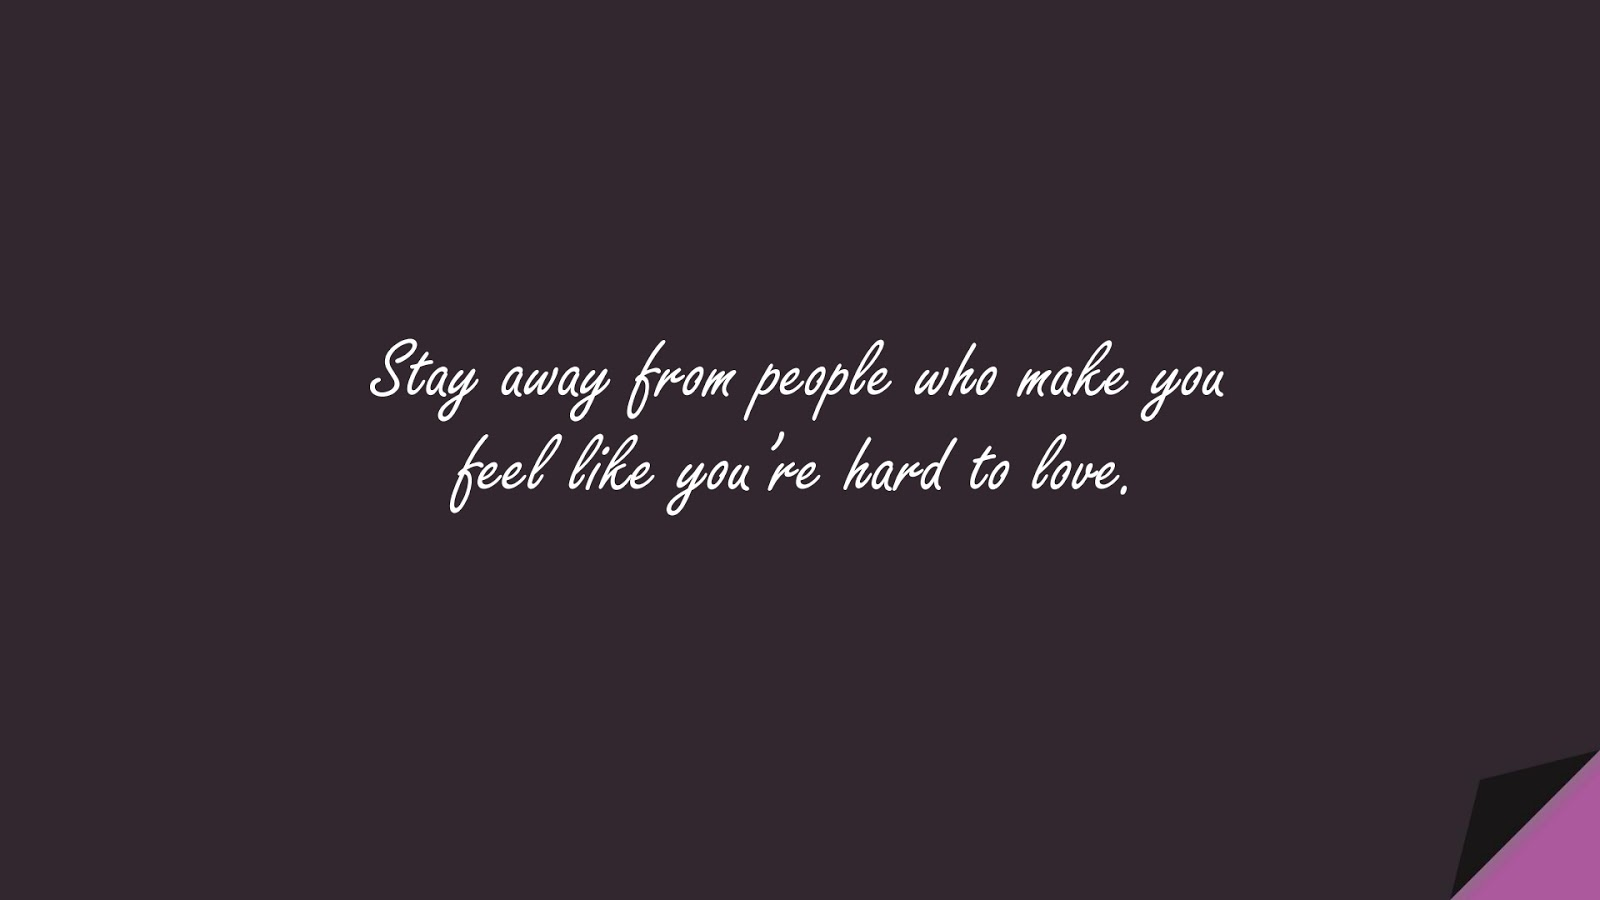 Stay away from people who make you feel like you're hard to love.FALSE